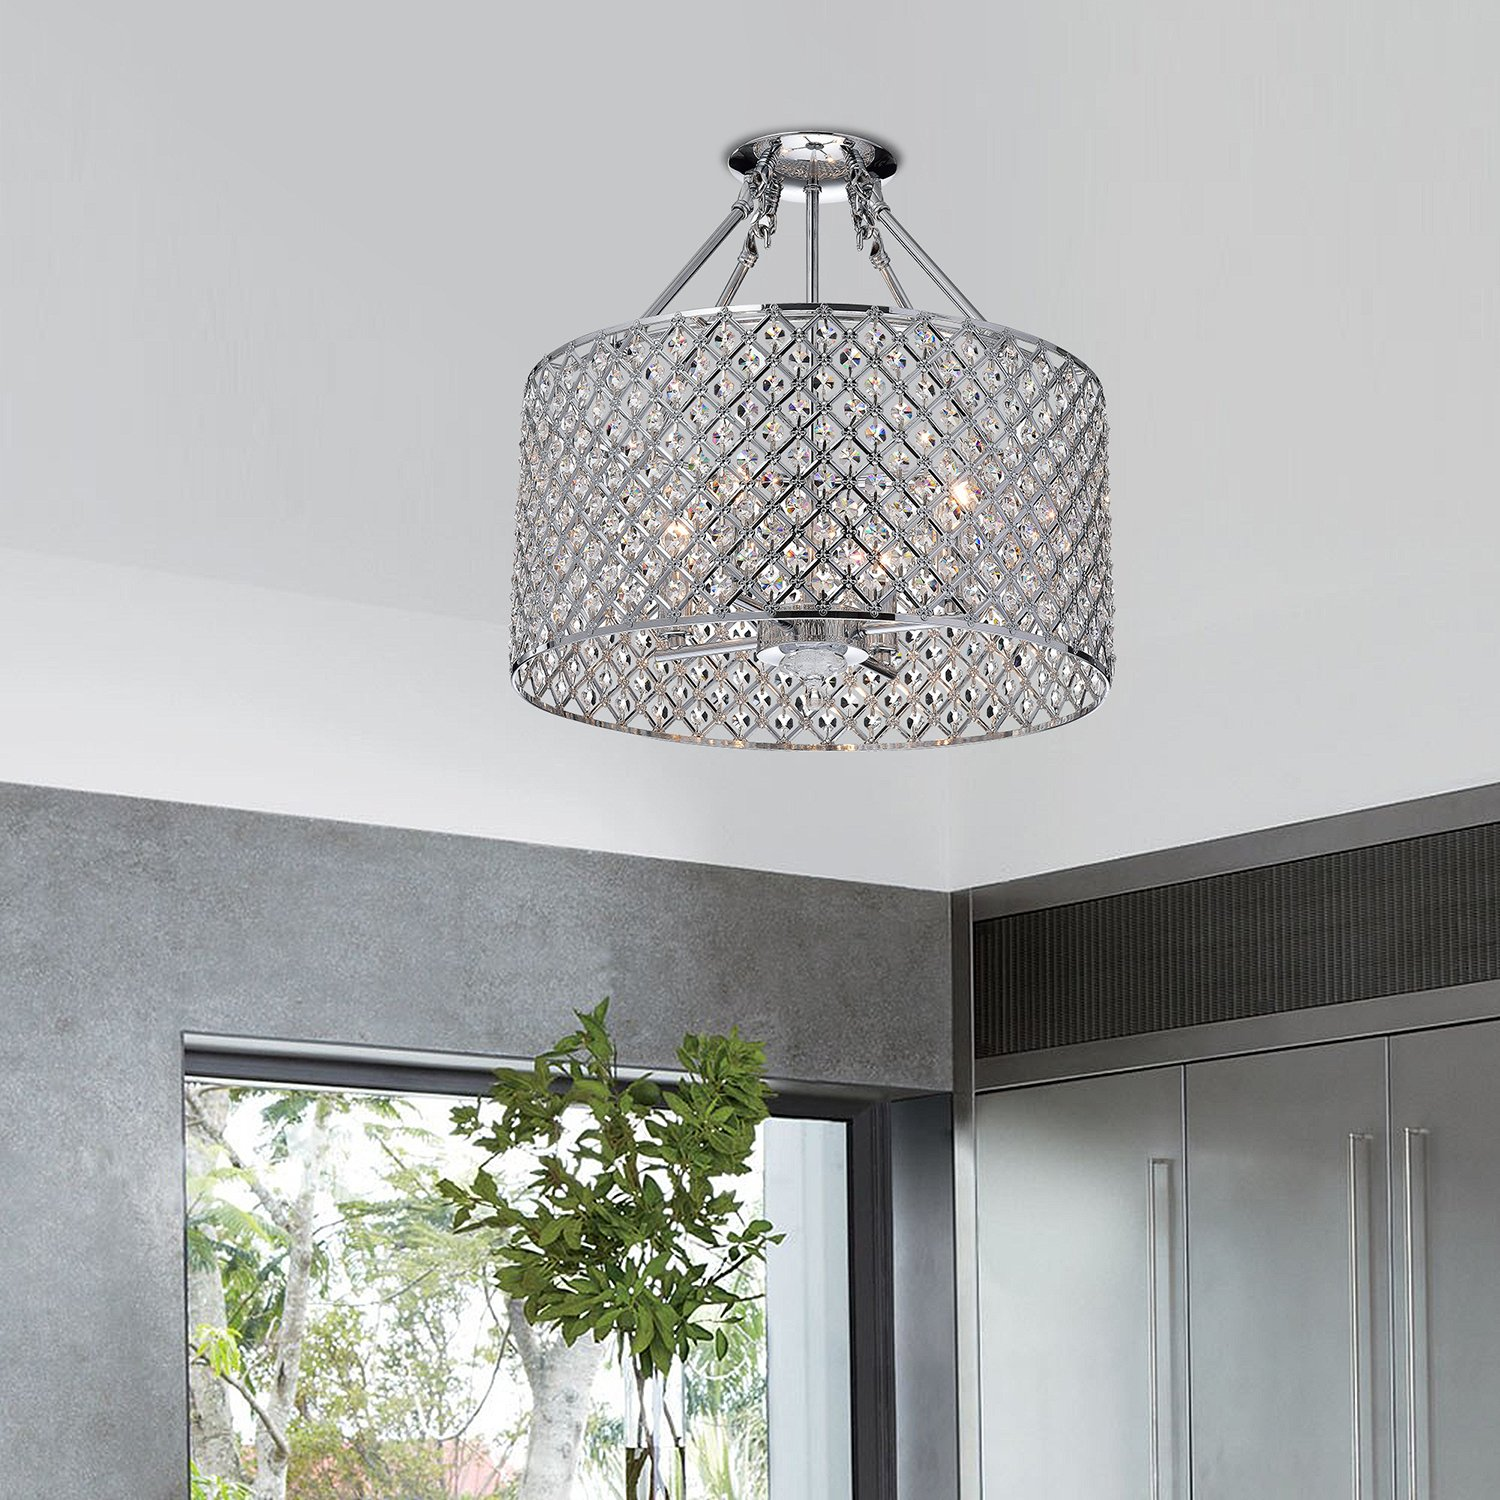 Edvivi esg802ch marya 4 light drum semi flush mount crystal edvivi esg802ch marya 4 light drum semi flush mount crystal chandelier chrome finish round amazon arubaitofo Choice Image